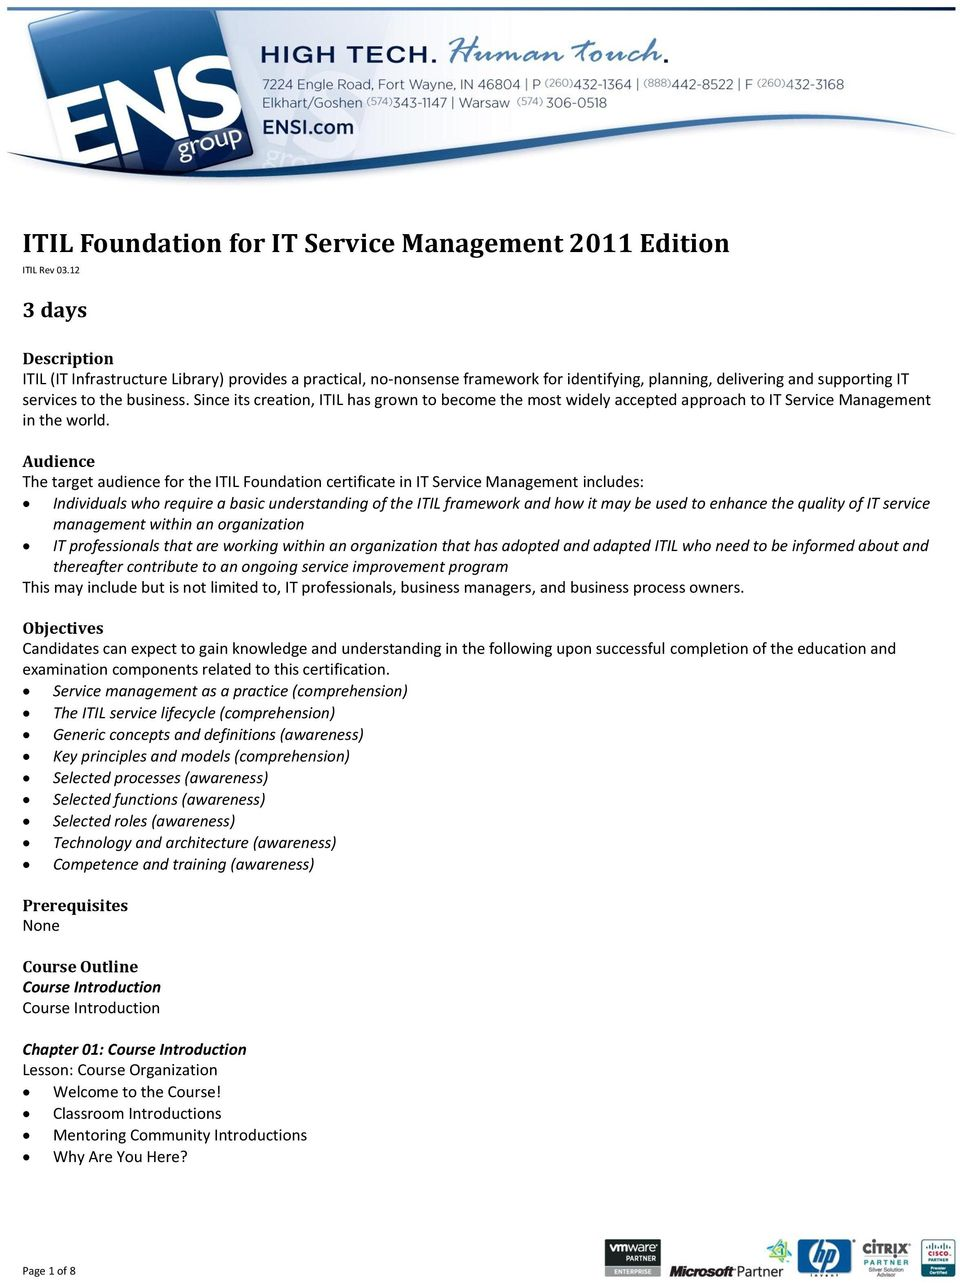 Since its creation, ITIL has grown to become the most widely accepted approach to IT Service Management in the world.